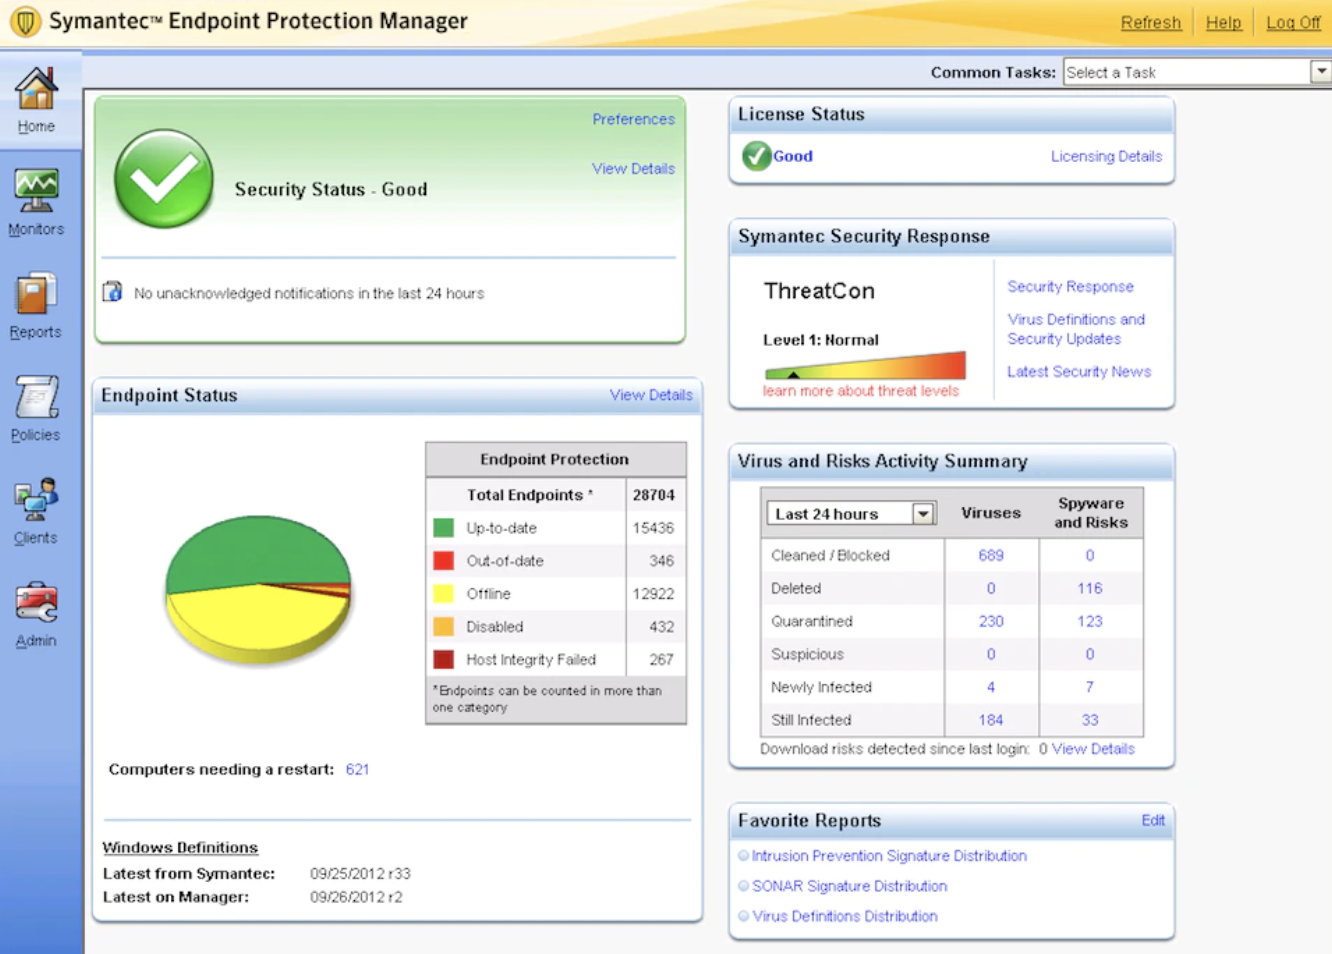 screenshot of endpoint security software dashboard Symantec